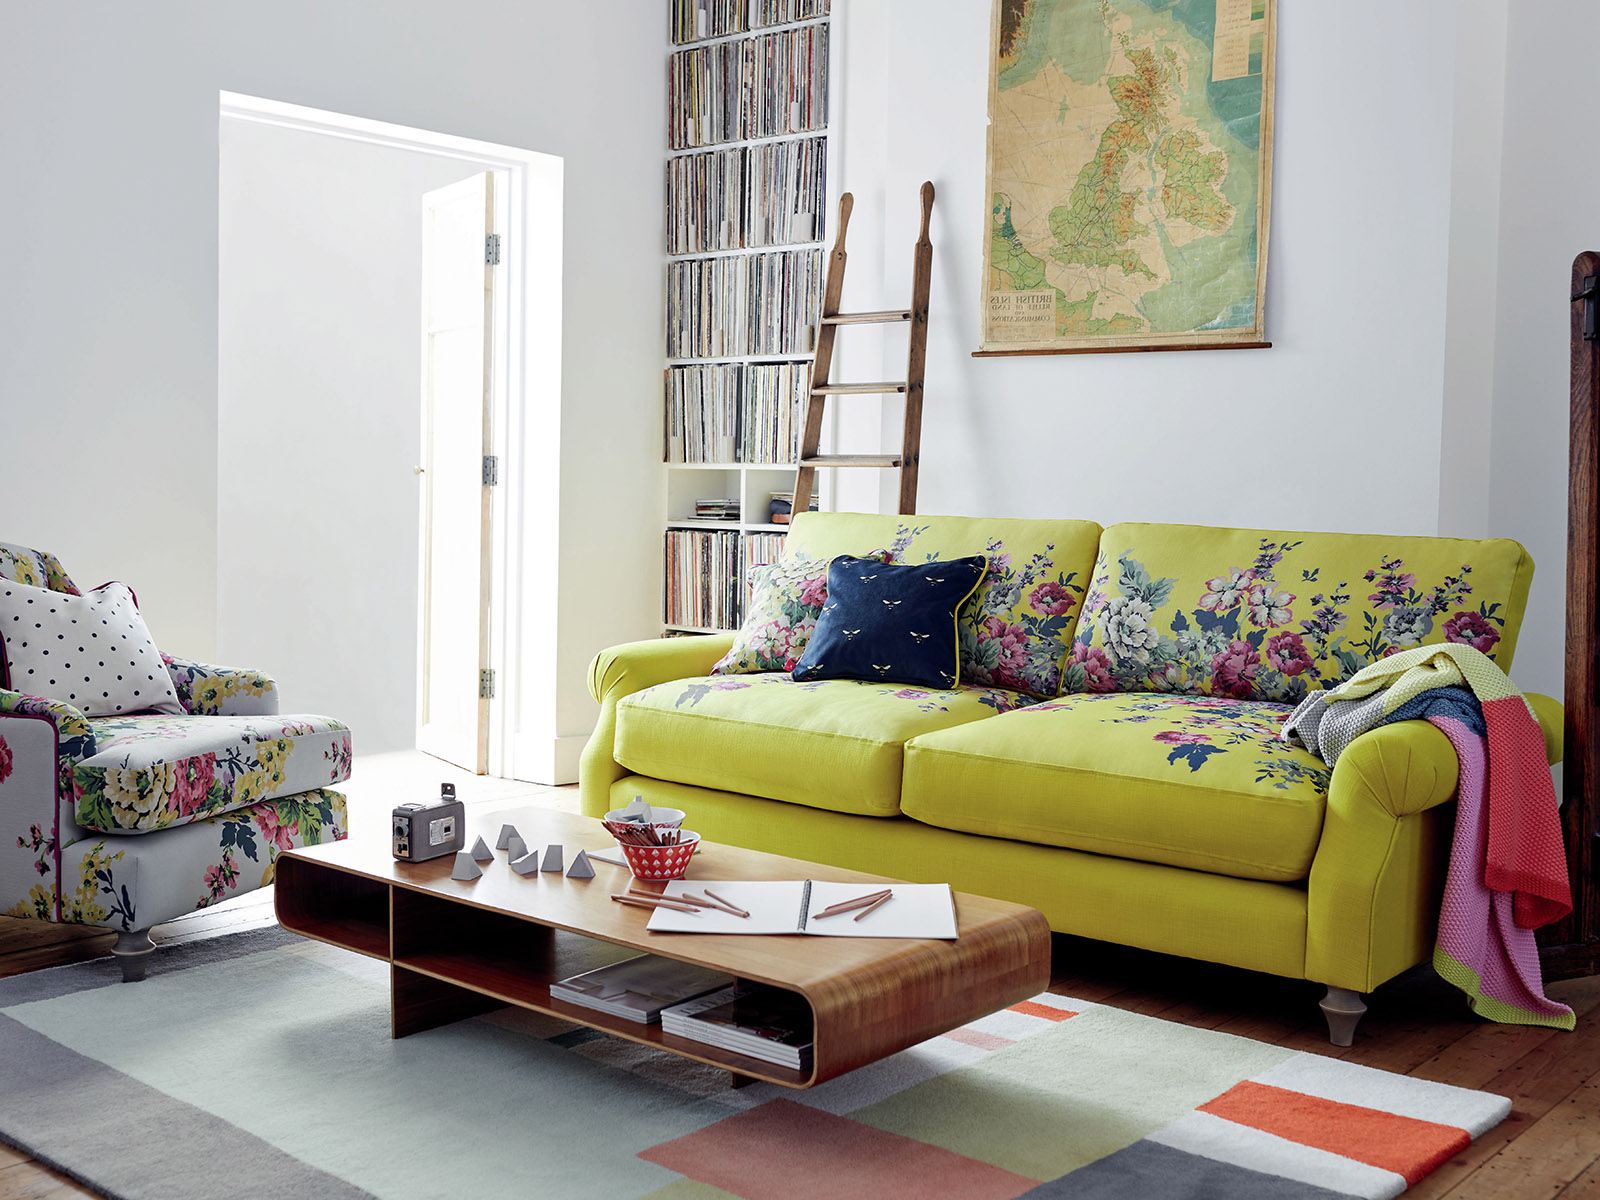 Colour lover and interior Designer Sophie Robinson selects her favourite yellow pieces on her colour crush feature